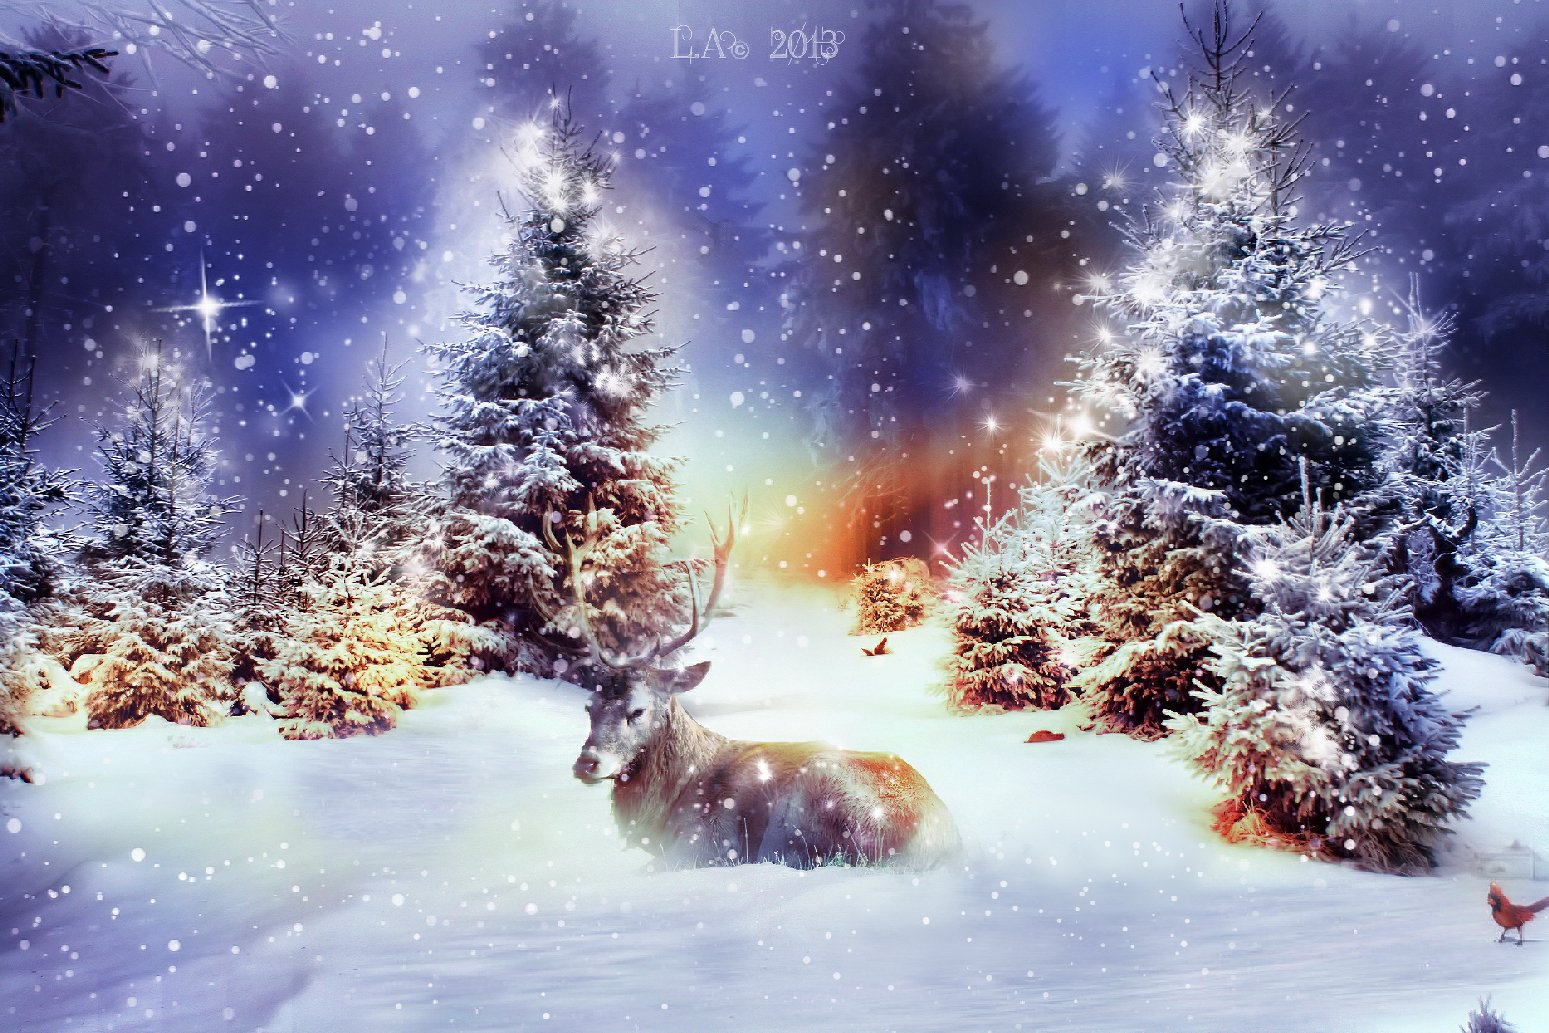 Winter farm desktop wallpaper wallpapersafari - Free christmas images for desktop wallpaper ...